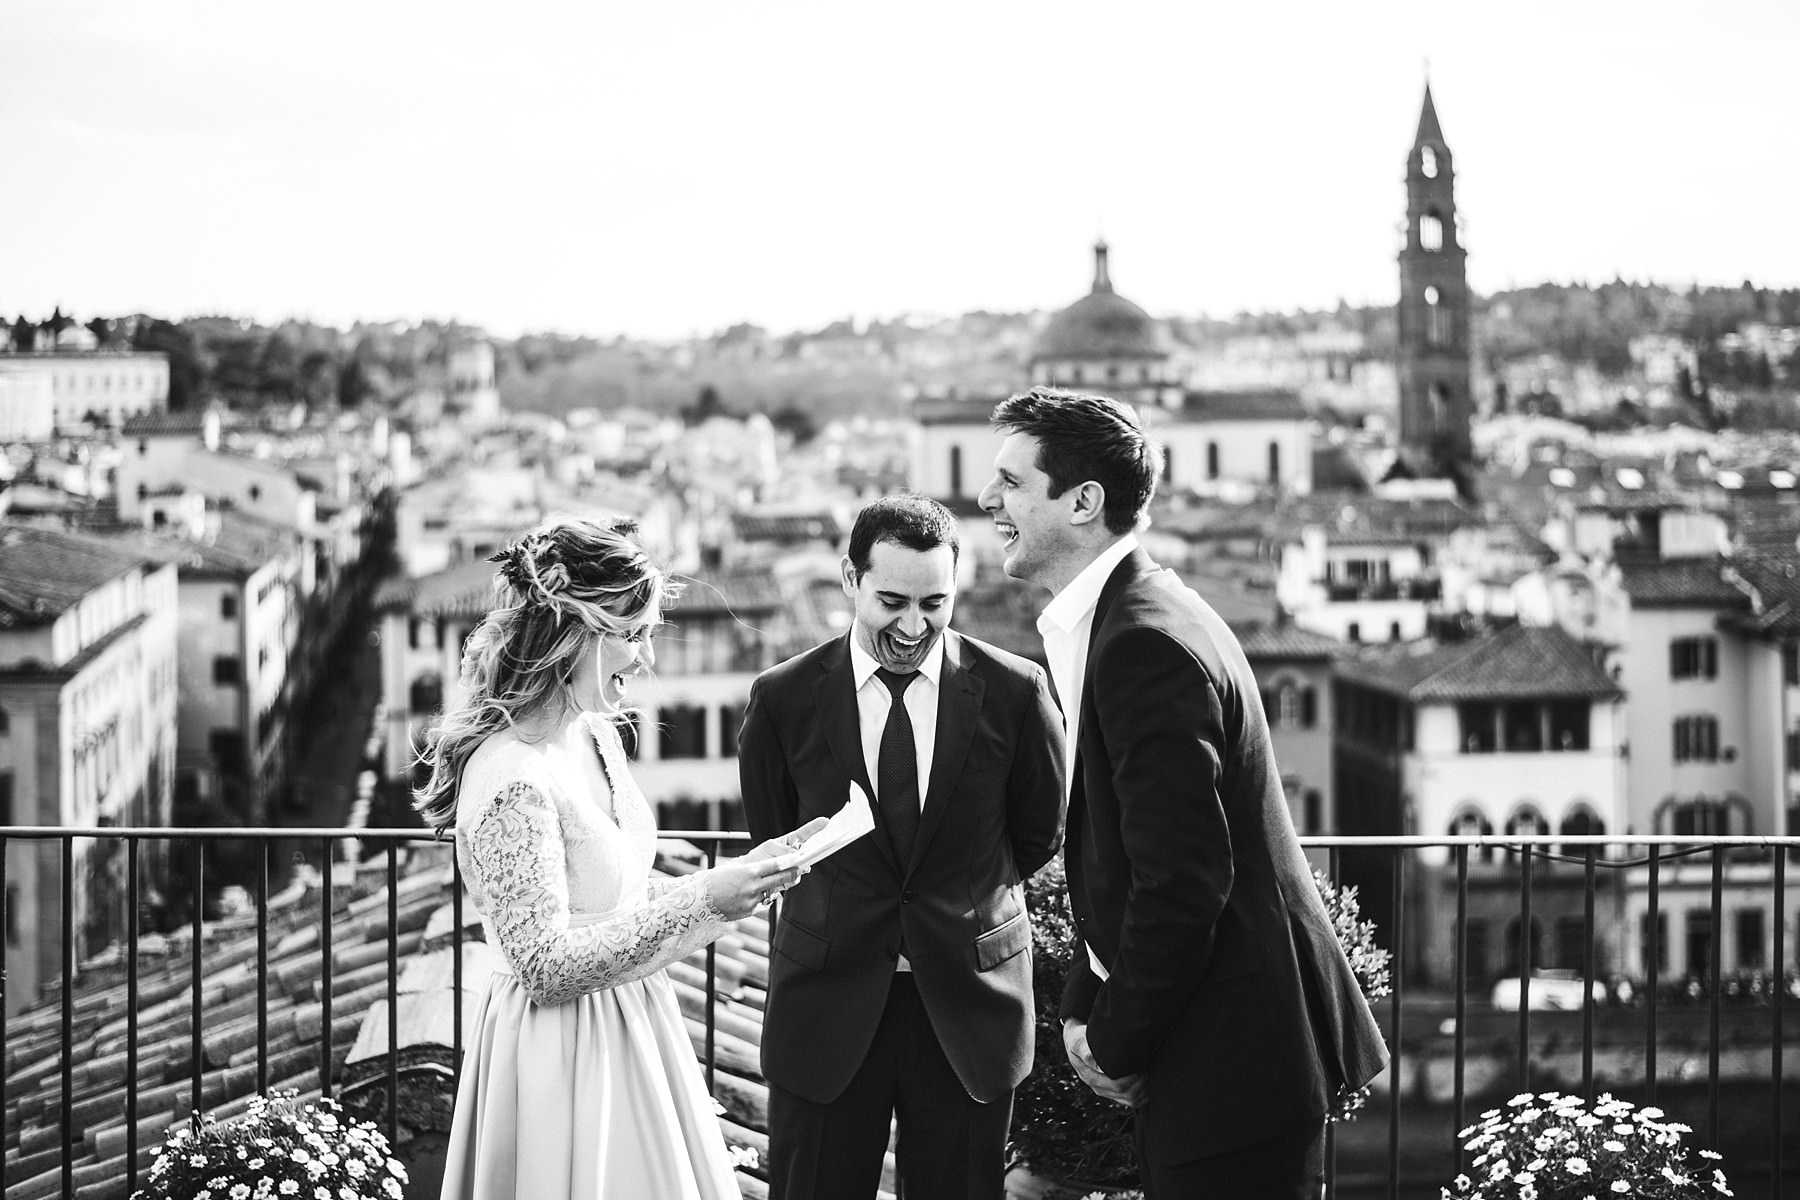 Emotional and exciting vows renewal photo shoot in Florence at Antica Torre Tornabuoni top terrace with a breathtaking view of the city